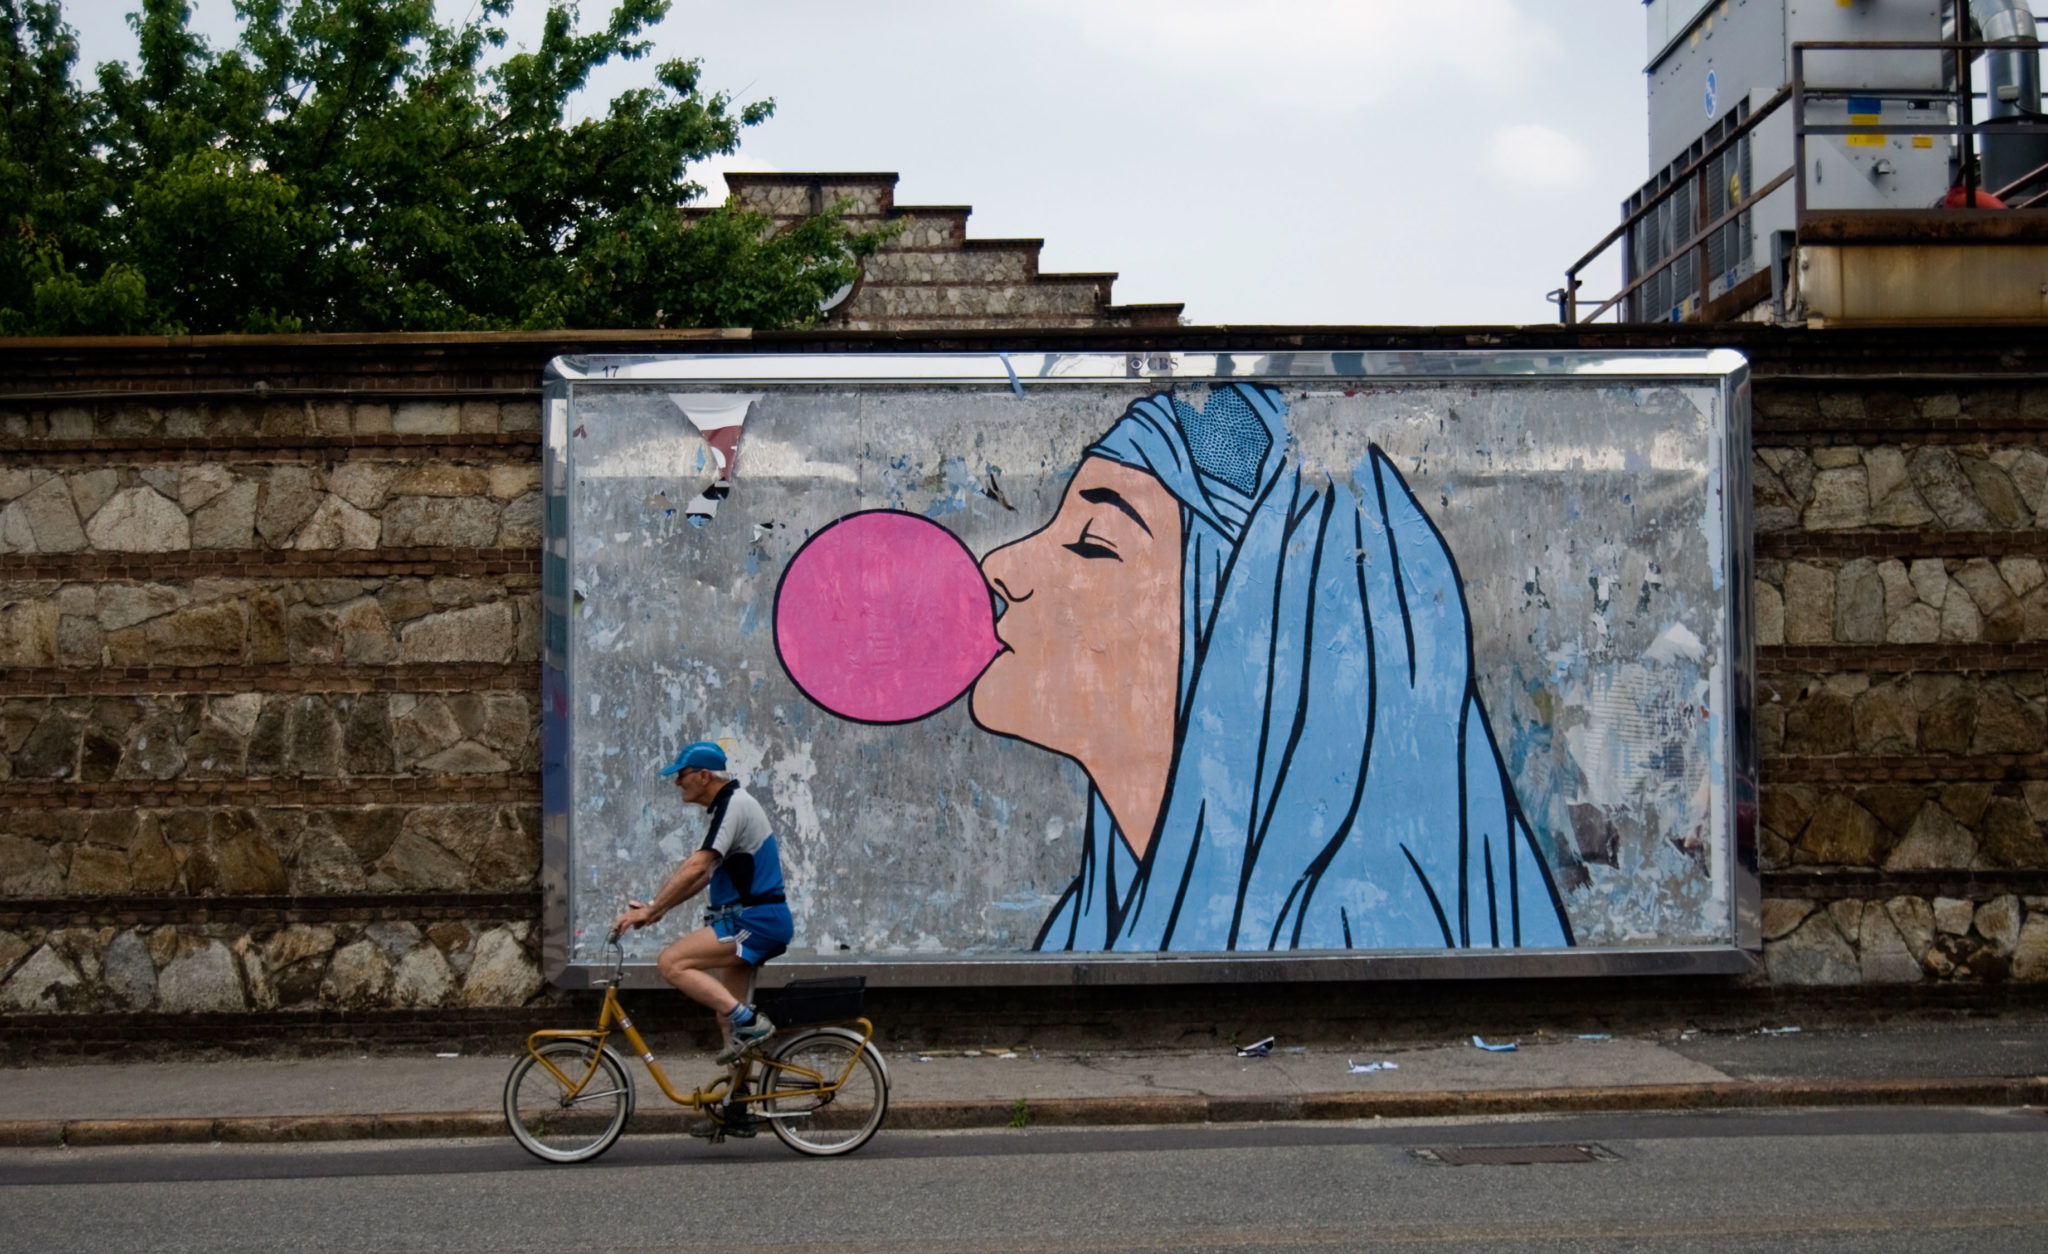 WK_BR1_Welcome big babol, poster on billboard, Turin, 2012_courtesy of the artist